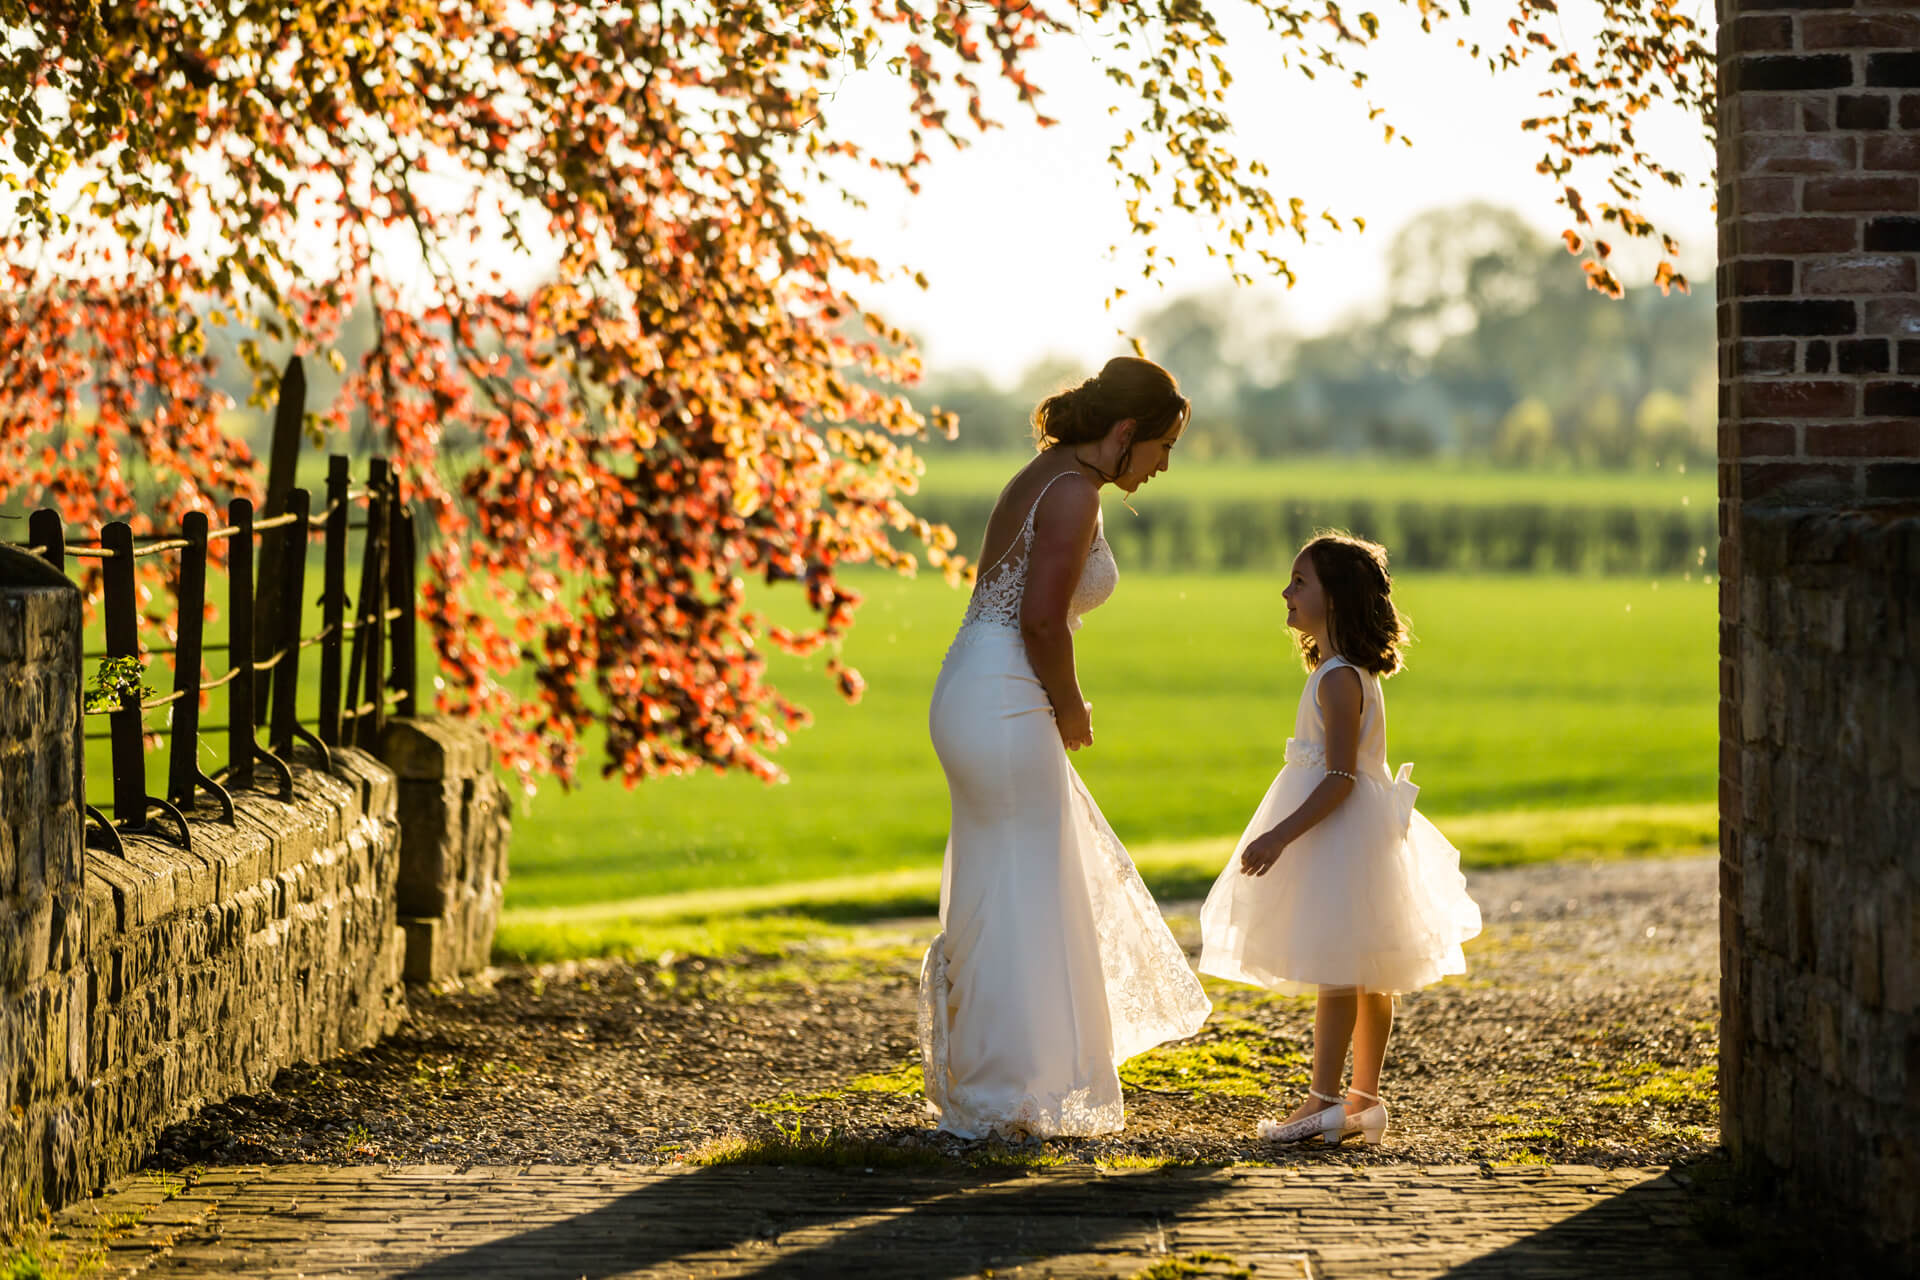 bride and flower girl chatting together in some beautiful sunlight